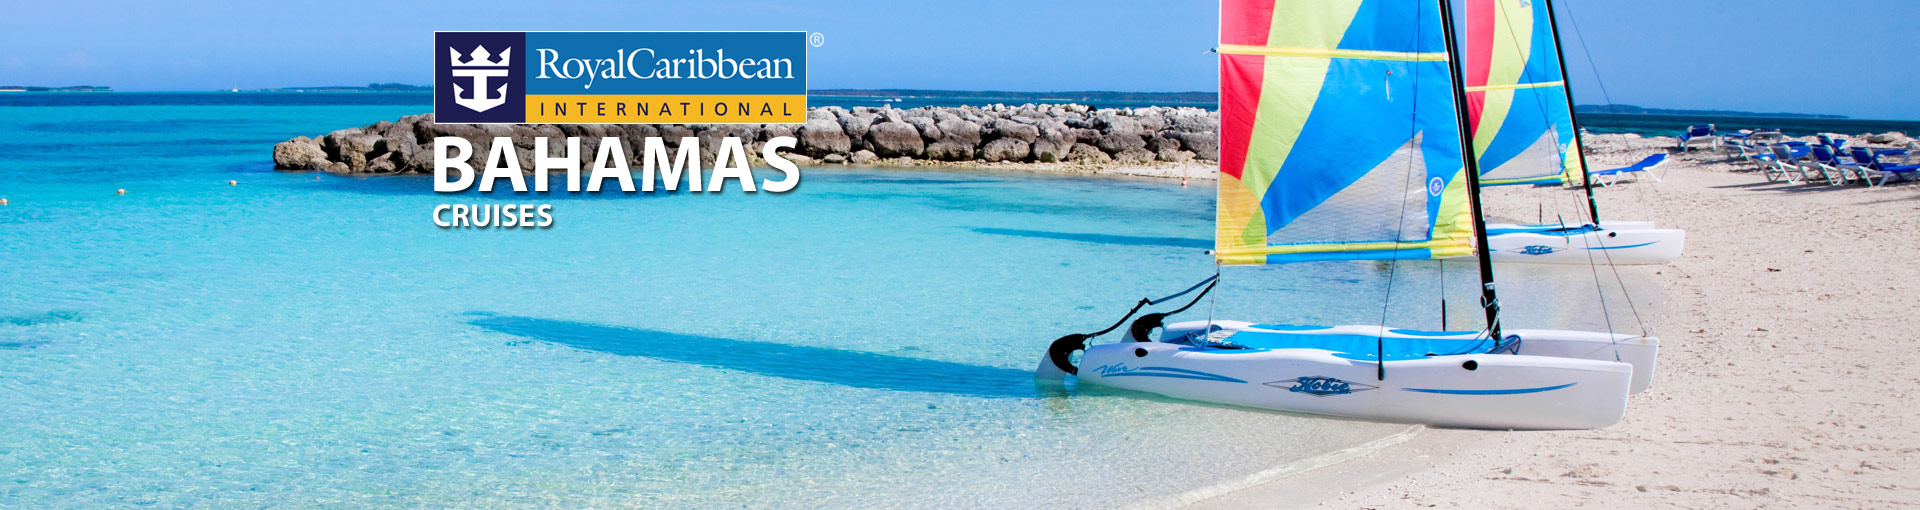 Royal Caribbean Bahamas Cruises